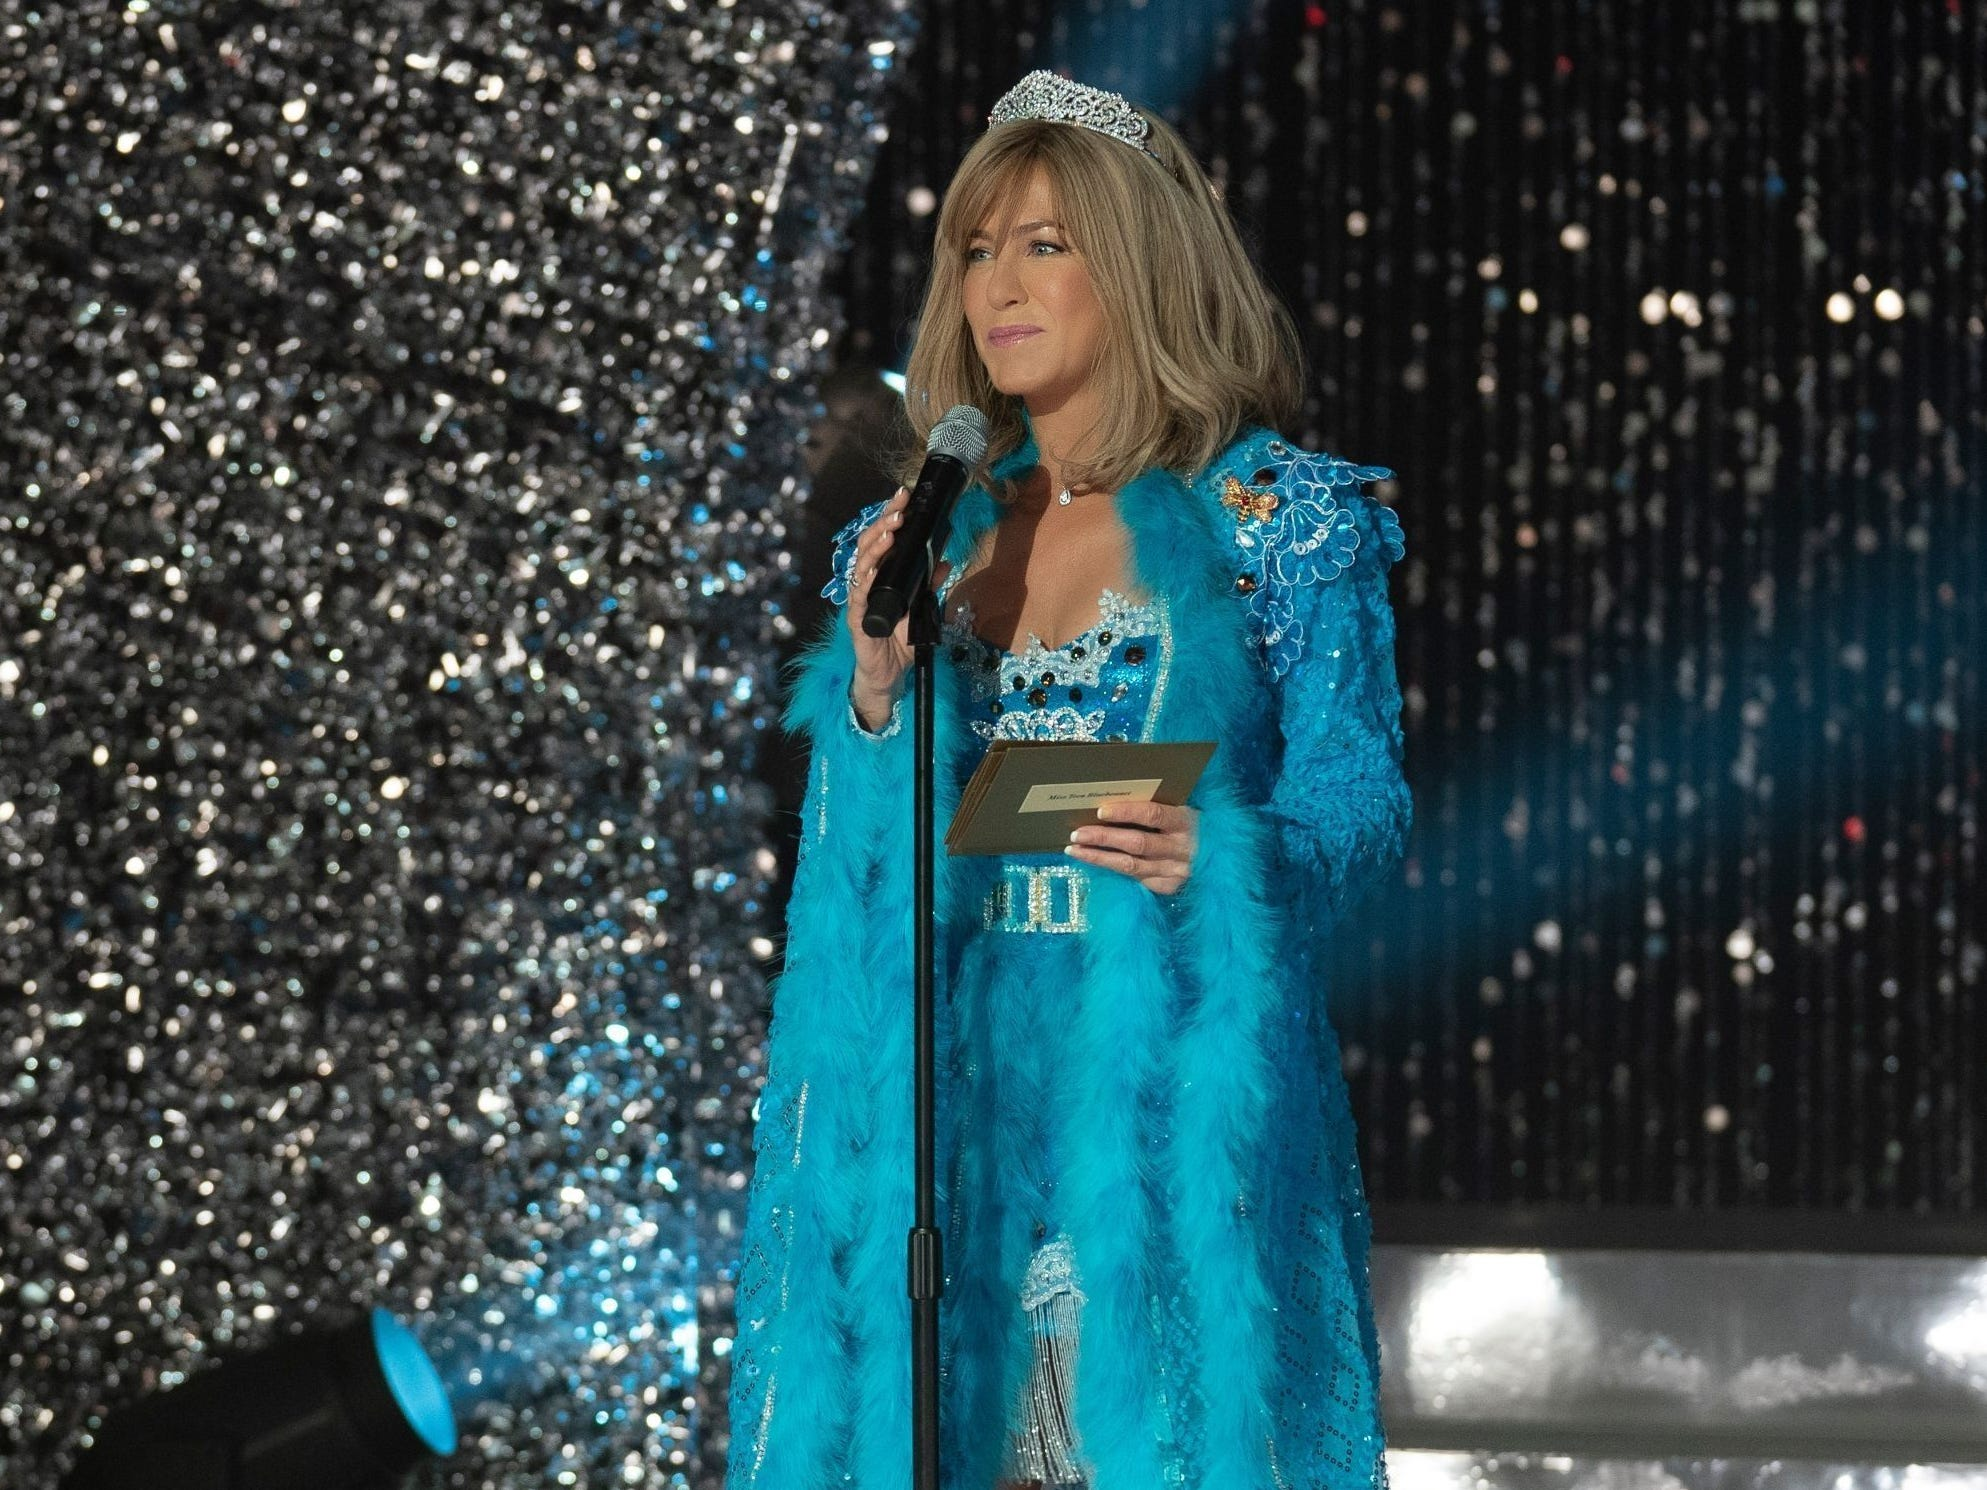 """In December 2018, Netflix released the movie """"Dumplin',"""" in which Aniston played an over-the-top beauty pageant coach who seemed to prefer her pupils over her own daughter."""